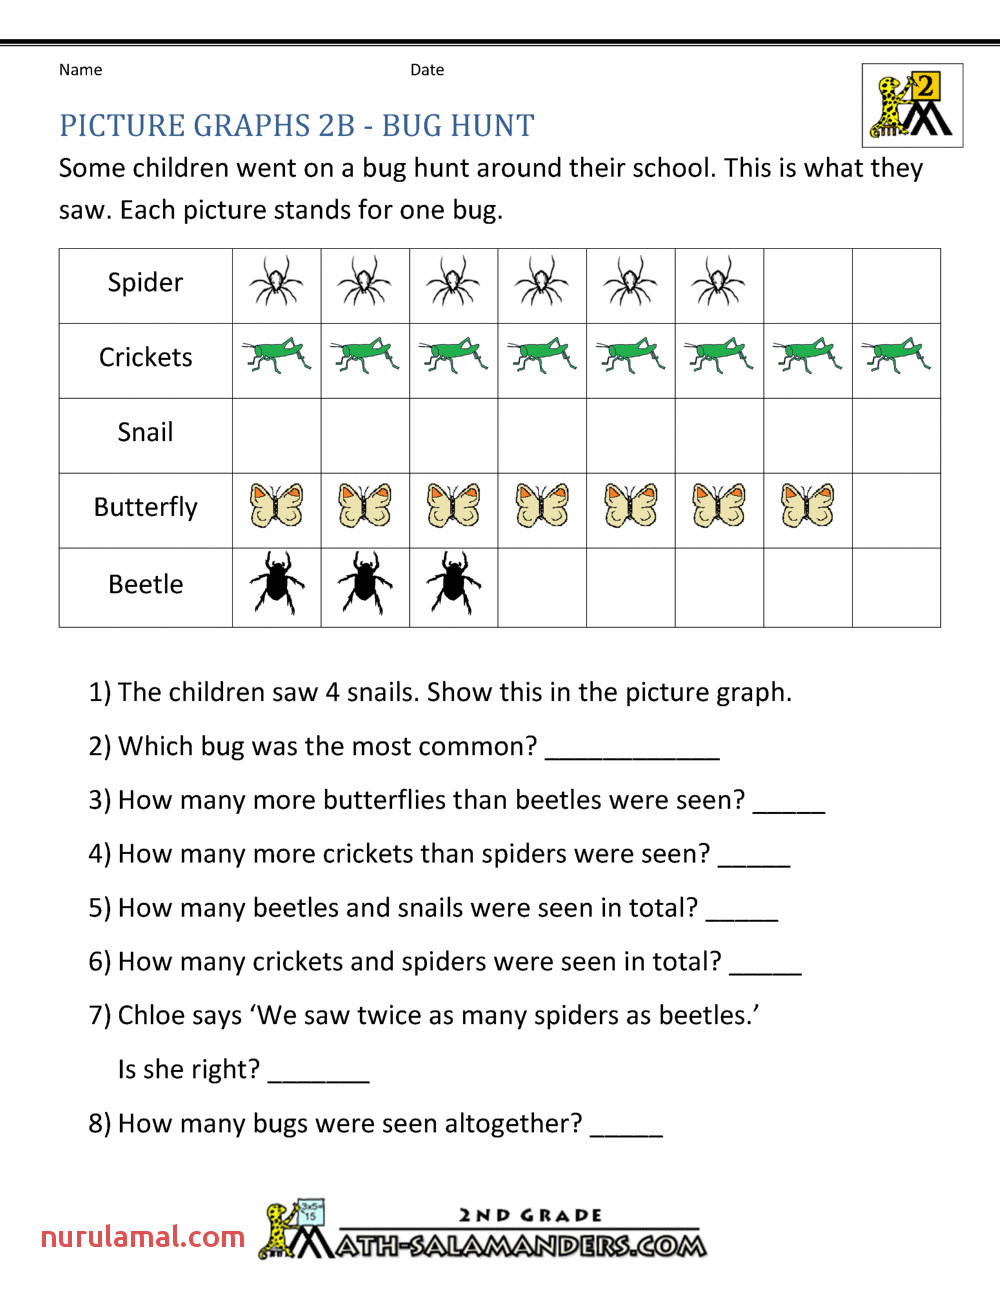 picture graphs 2nd grade 2b